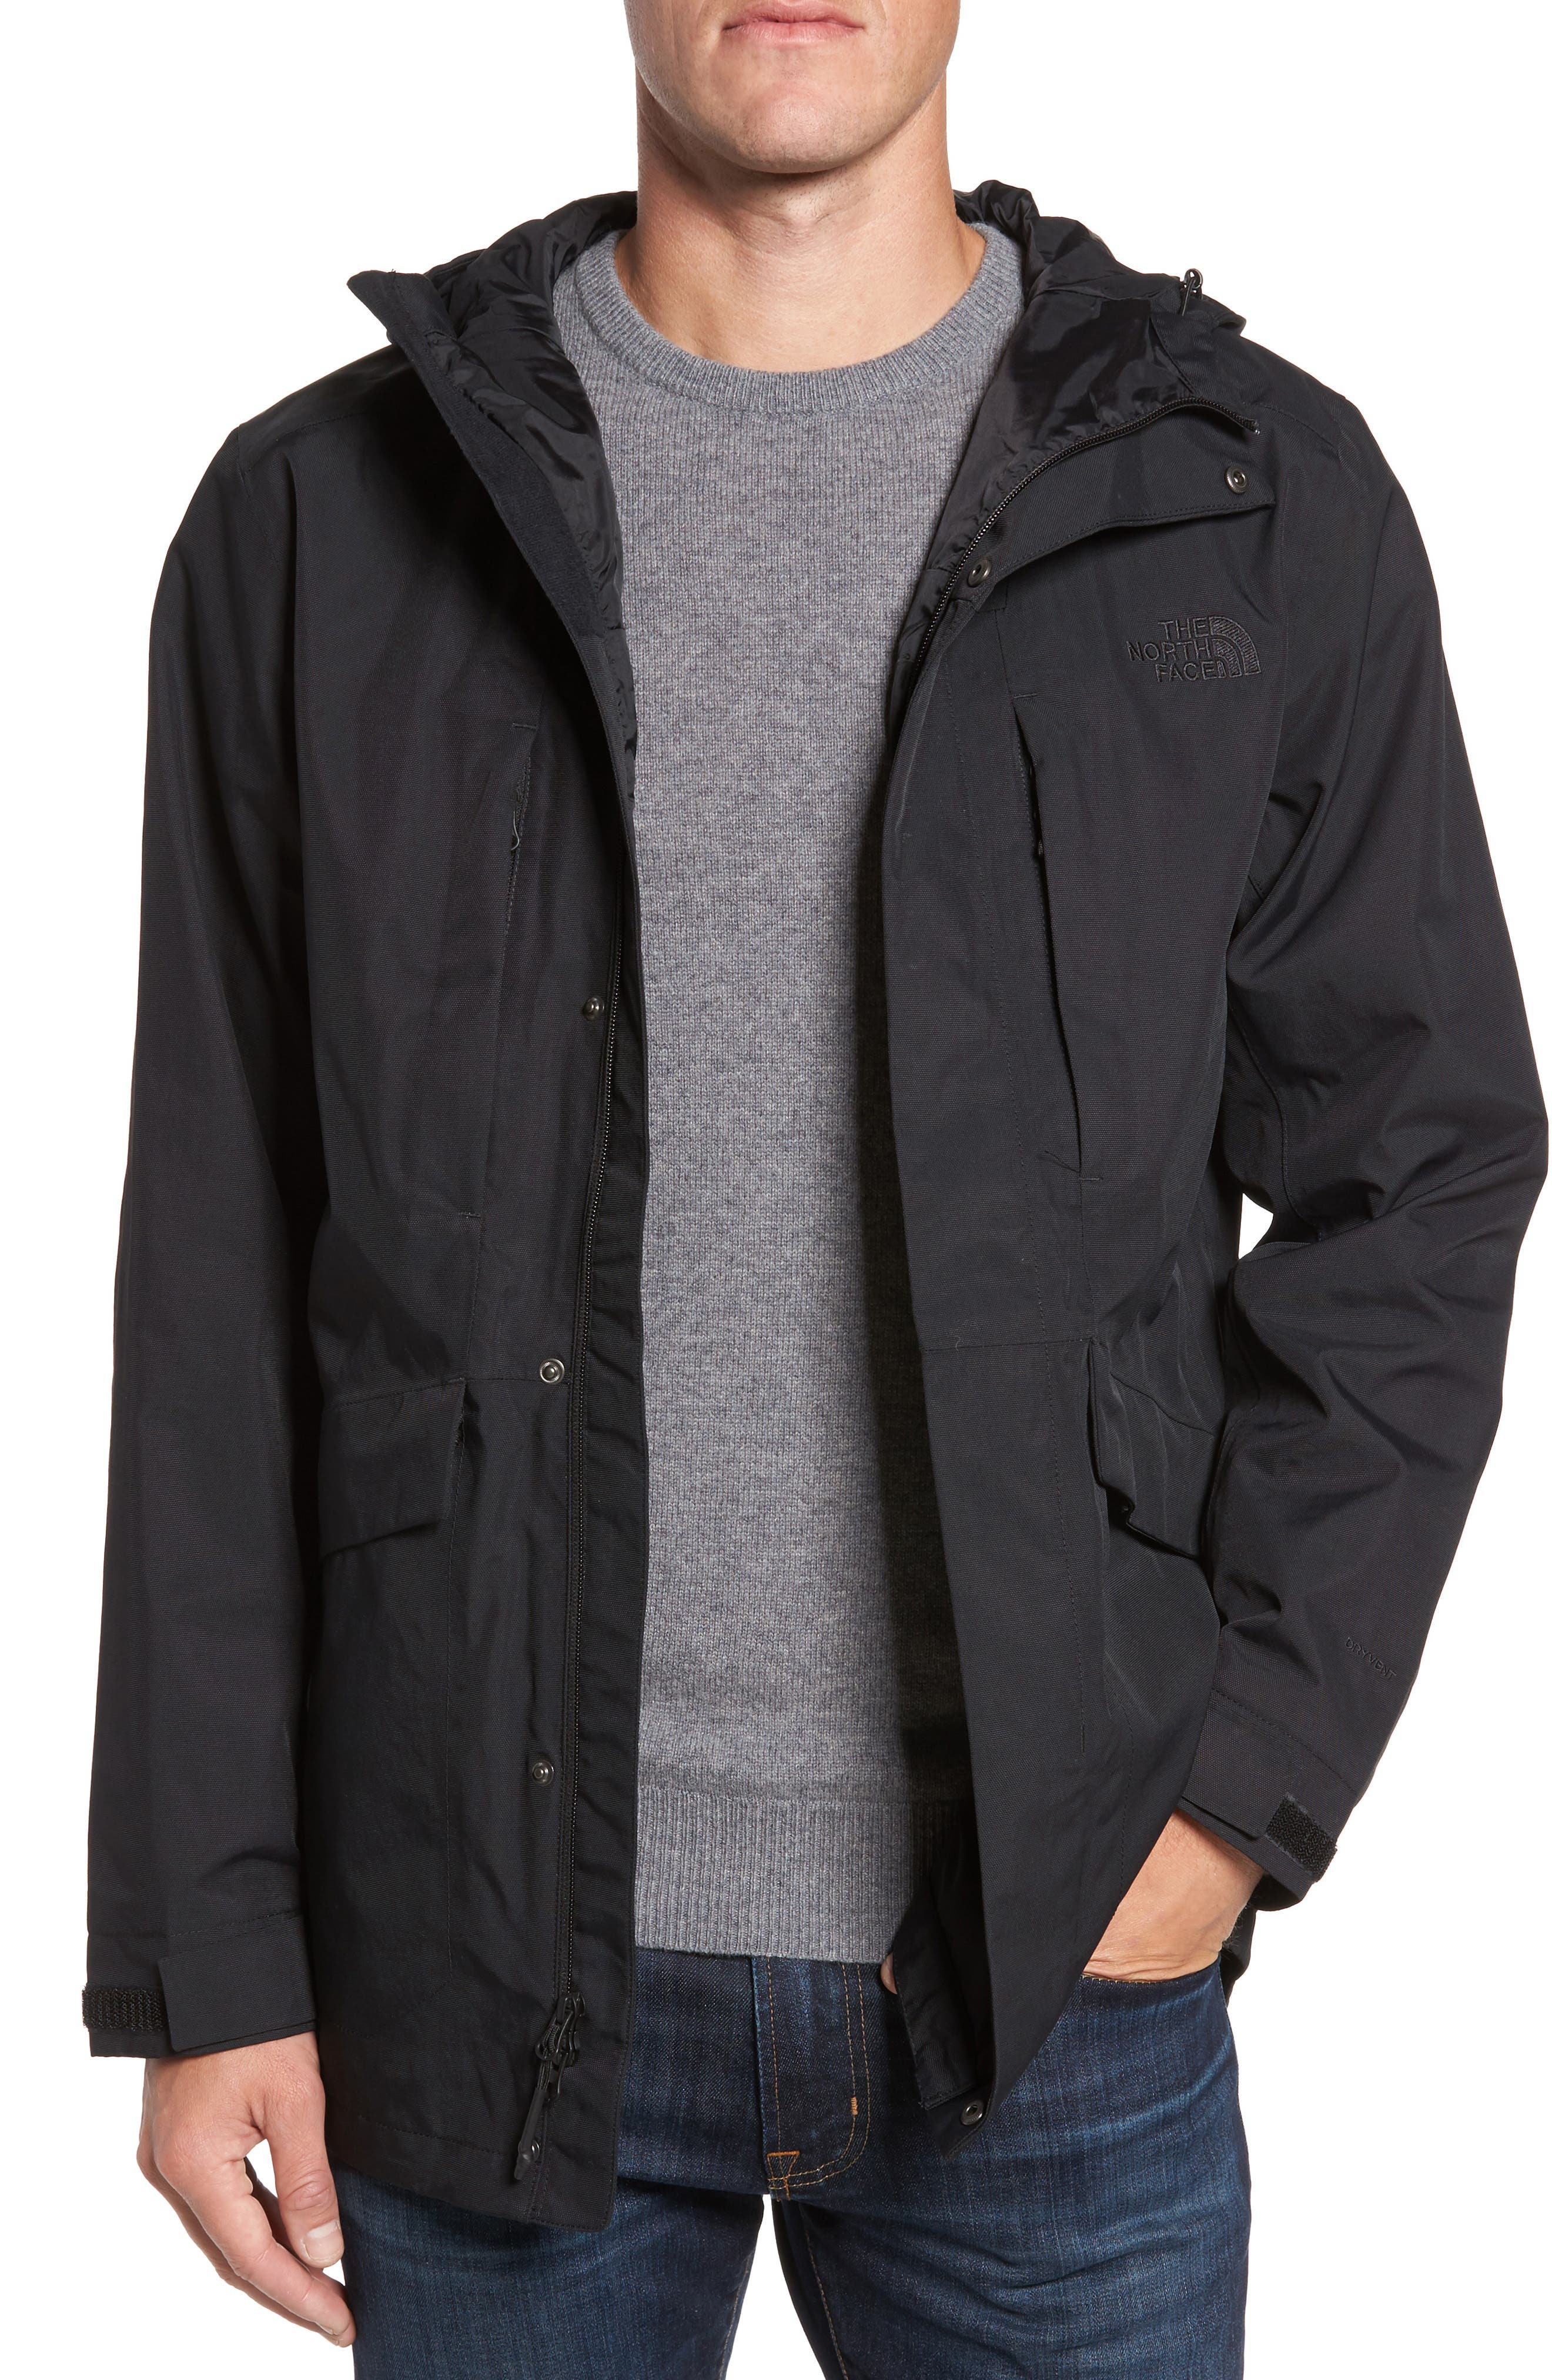 Main Image - The North Face El Misti Trench II Hooded Jacket